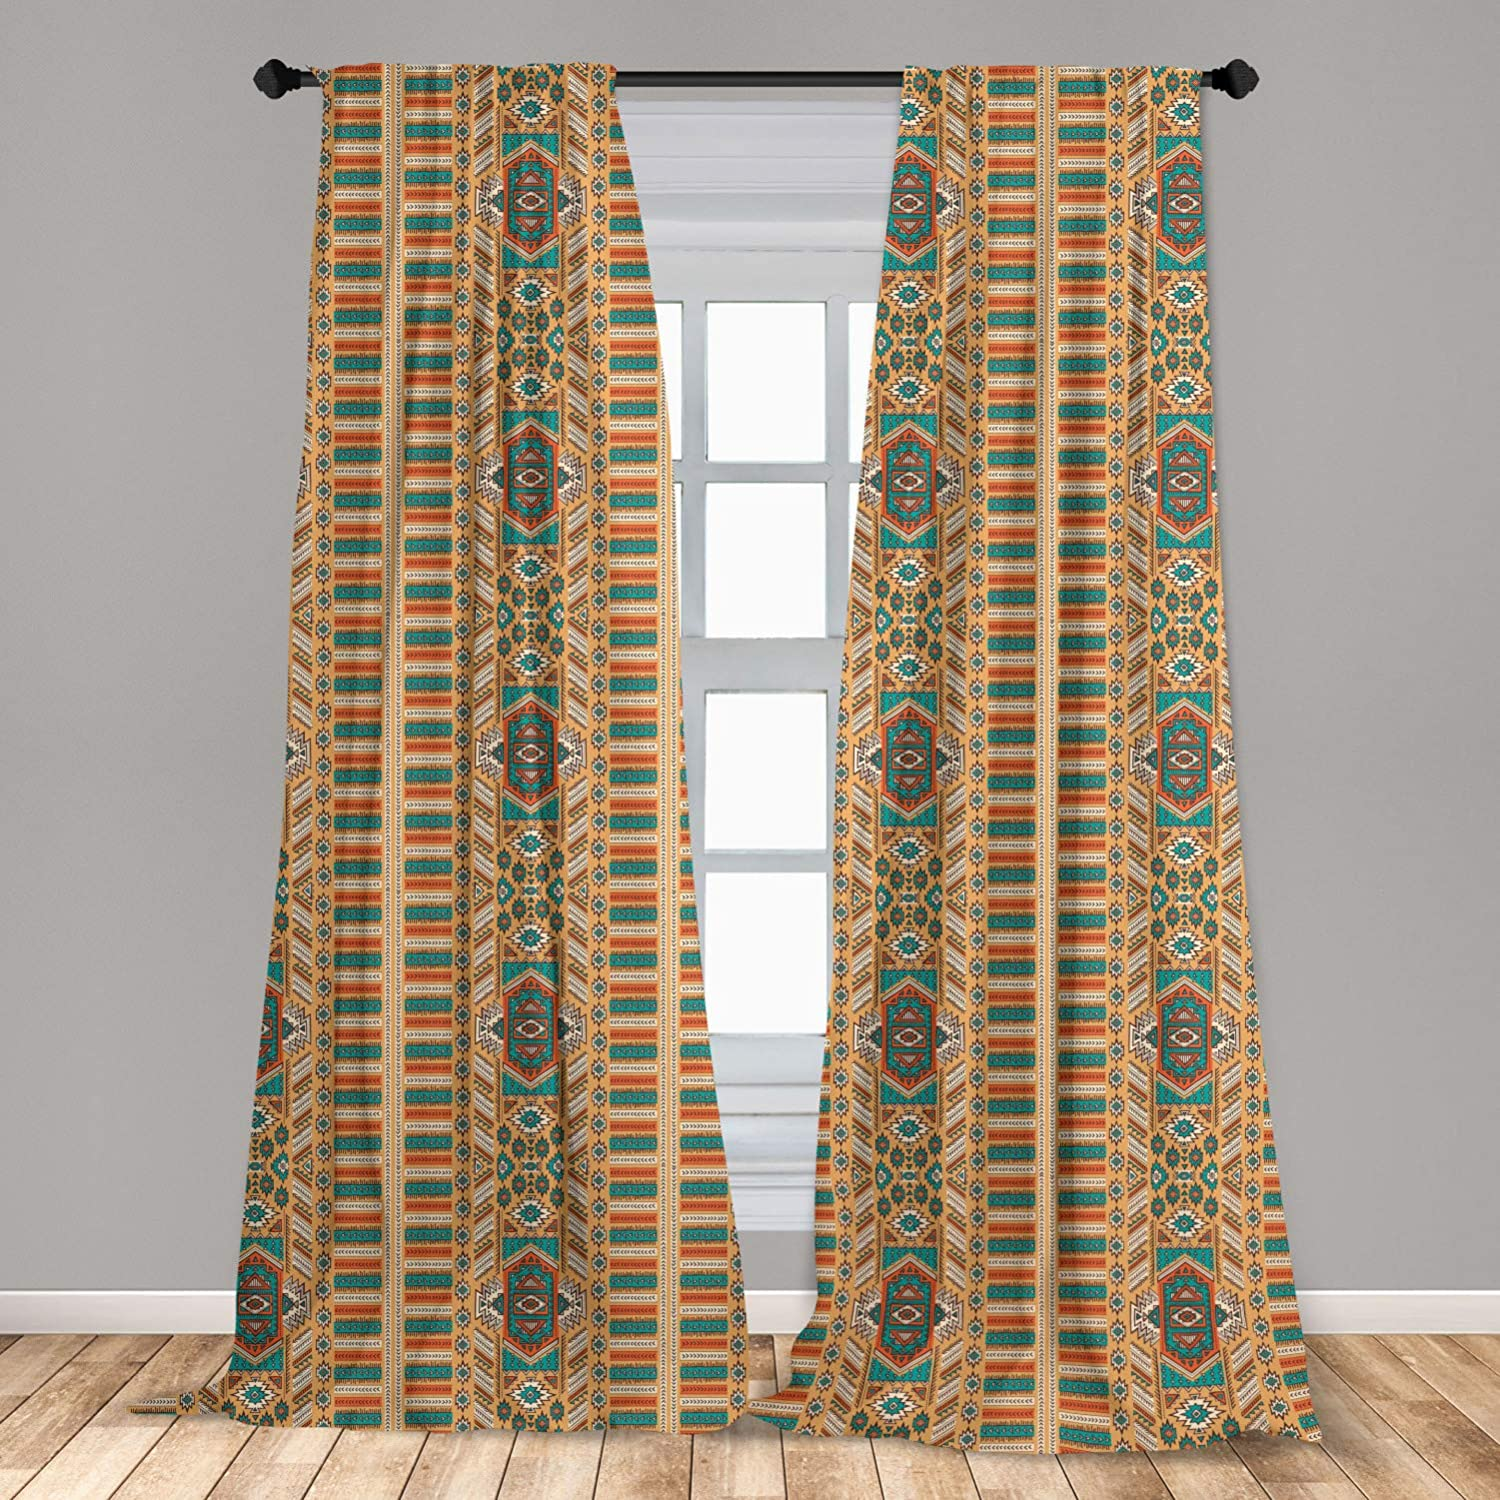 """Ambesonne Tribal Window Curtains, Secret Tribe Pattern in Bohemian Style, Lightweight Decorative Panels Set of 2 with Rod Pocket, 56"""" x 84"""", Apricot Orange"""